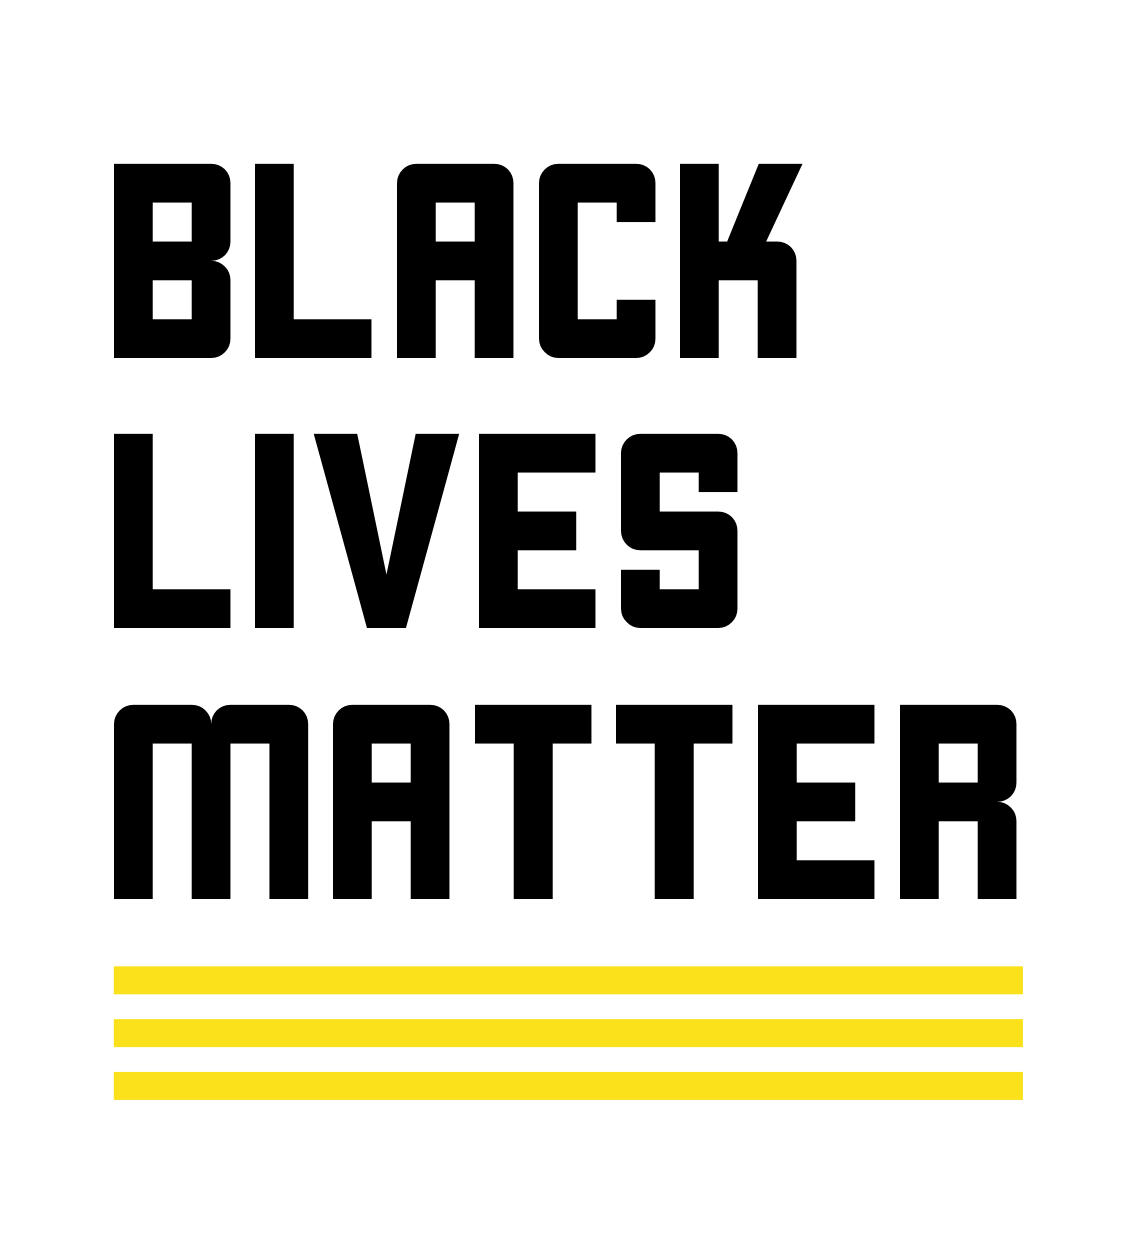 013 Blm Logo Black Lives Matter Research Outstanding Paper Movement Full